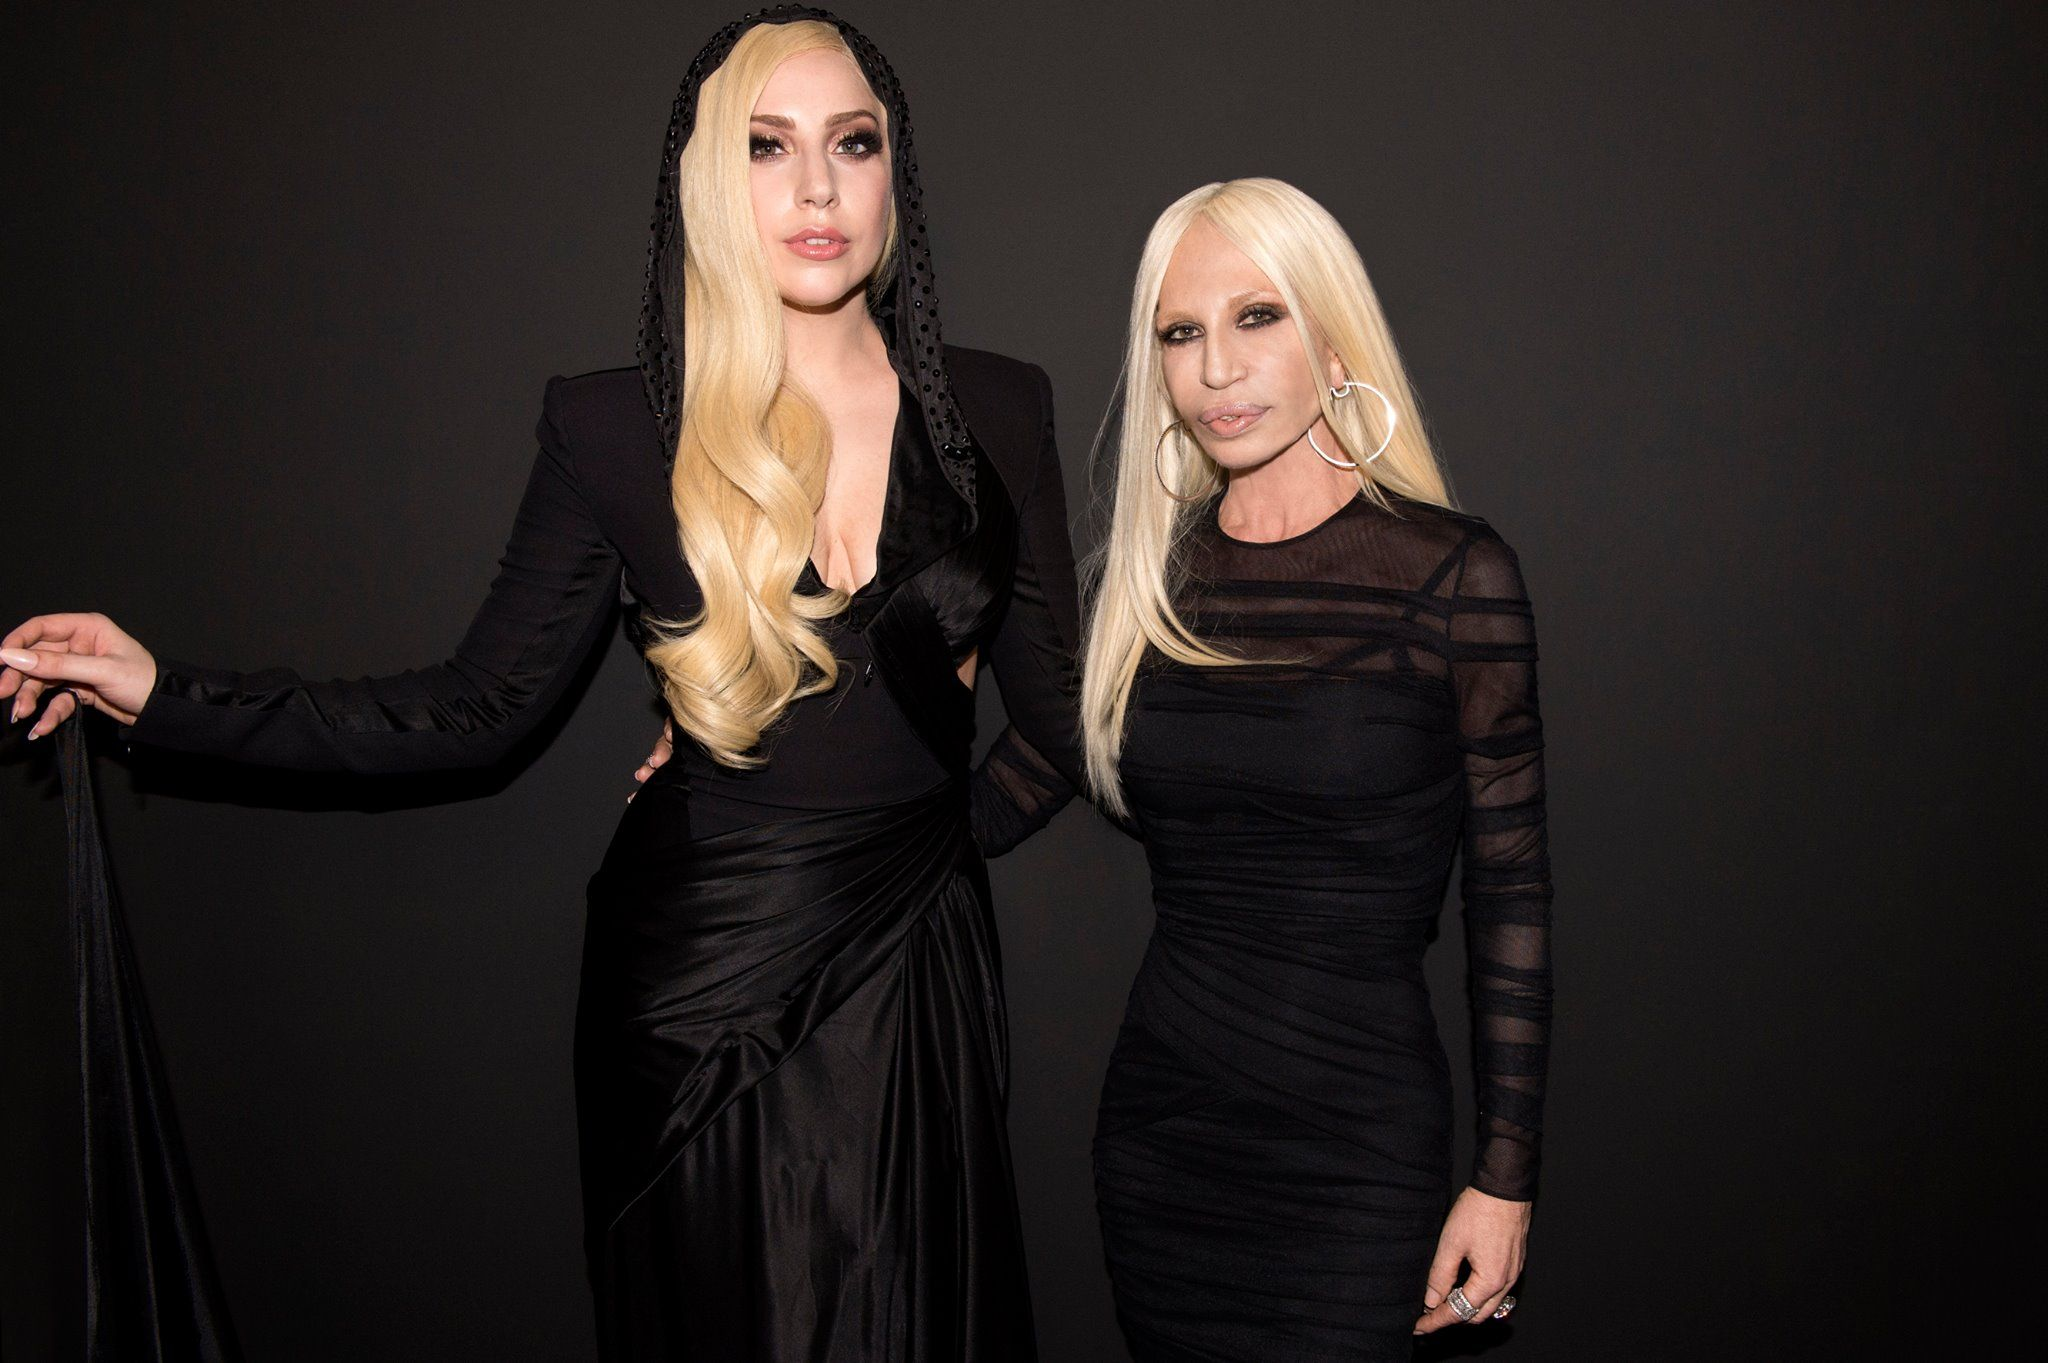 Glamorous duo Lady Gaga and Donatella Versace backstage at the Atelier Versace Spring 2014 show in Paris. #AtelierVersace #VersaceLovesGaga